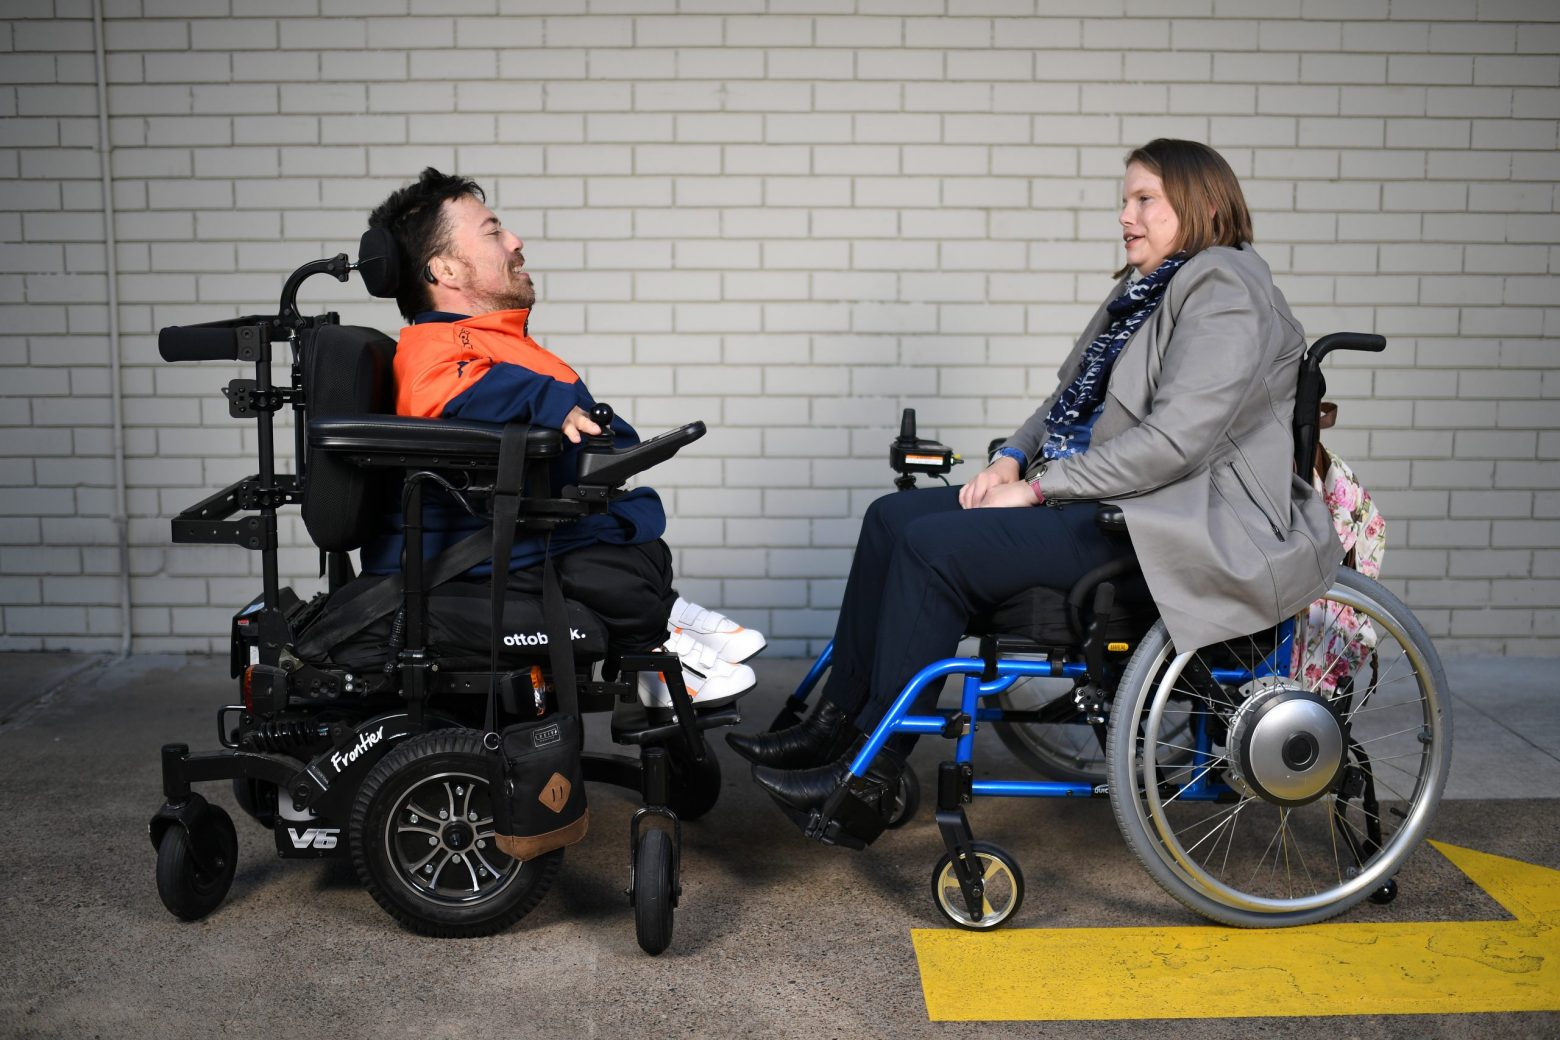 A man and a woman, both in wheel chairs facing each other talking, in front of a white brick wall and there is a bright yellow painted arrow on the ground,